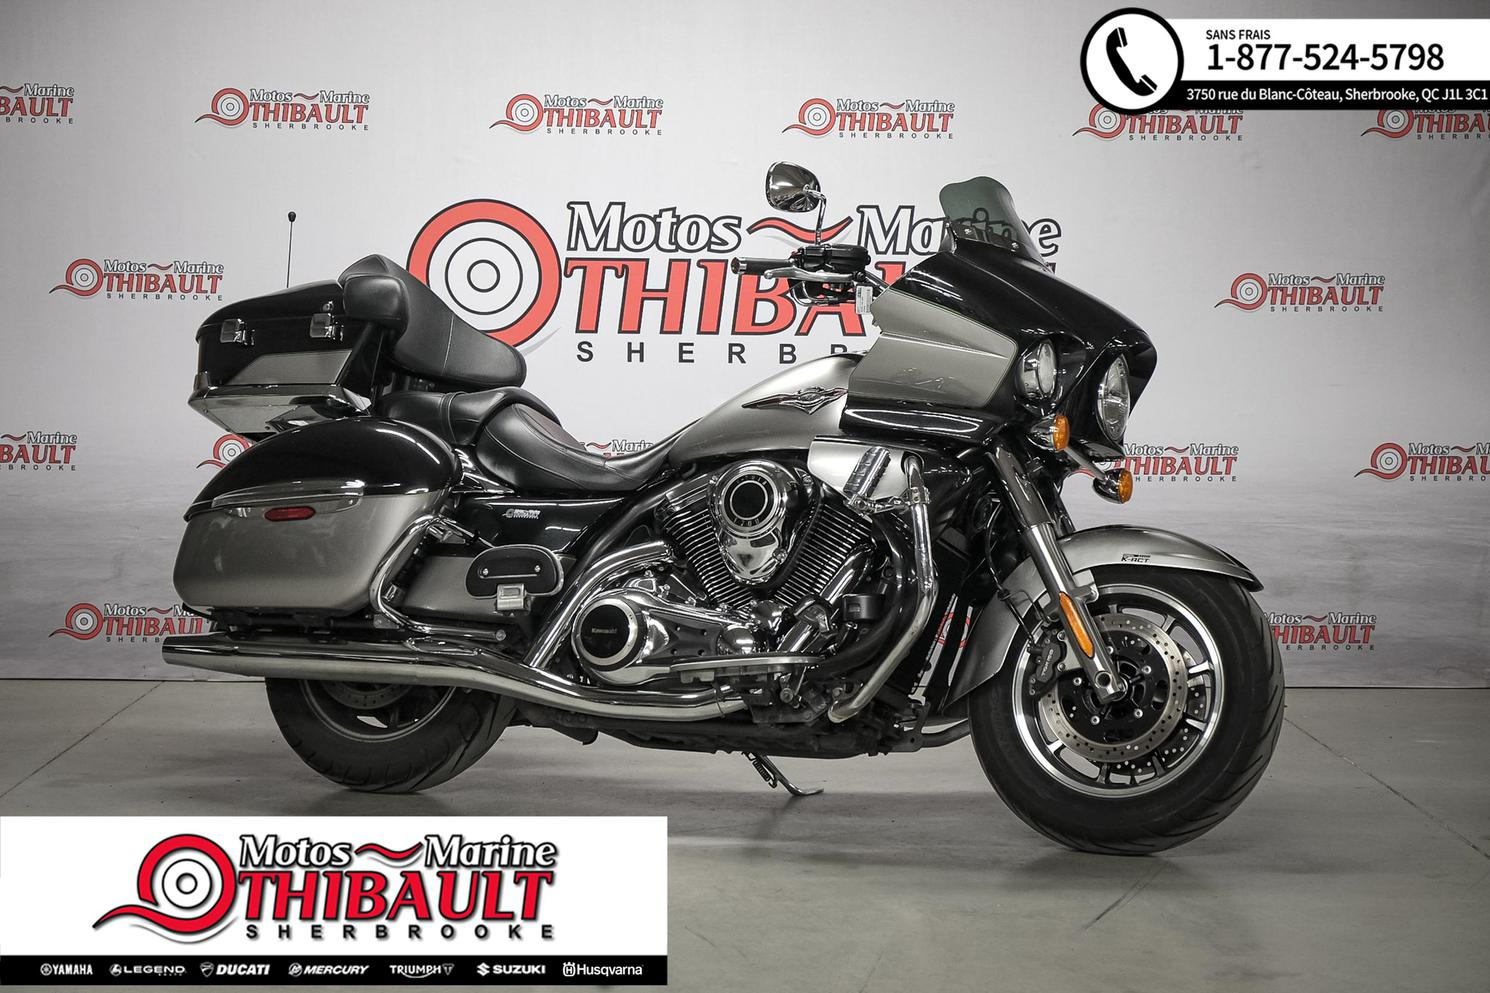 2016 Kawasaki Vulcan Voyager 1700 Kawasaki Vulcan 1700 Voyager ABS